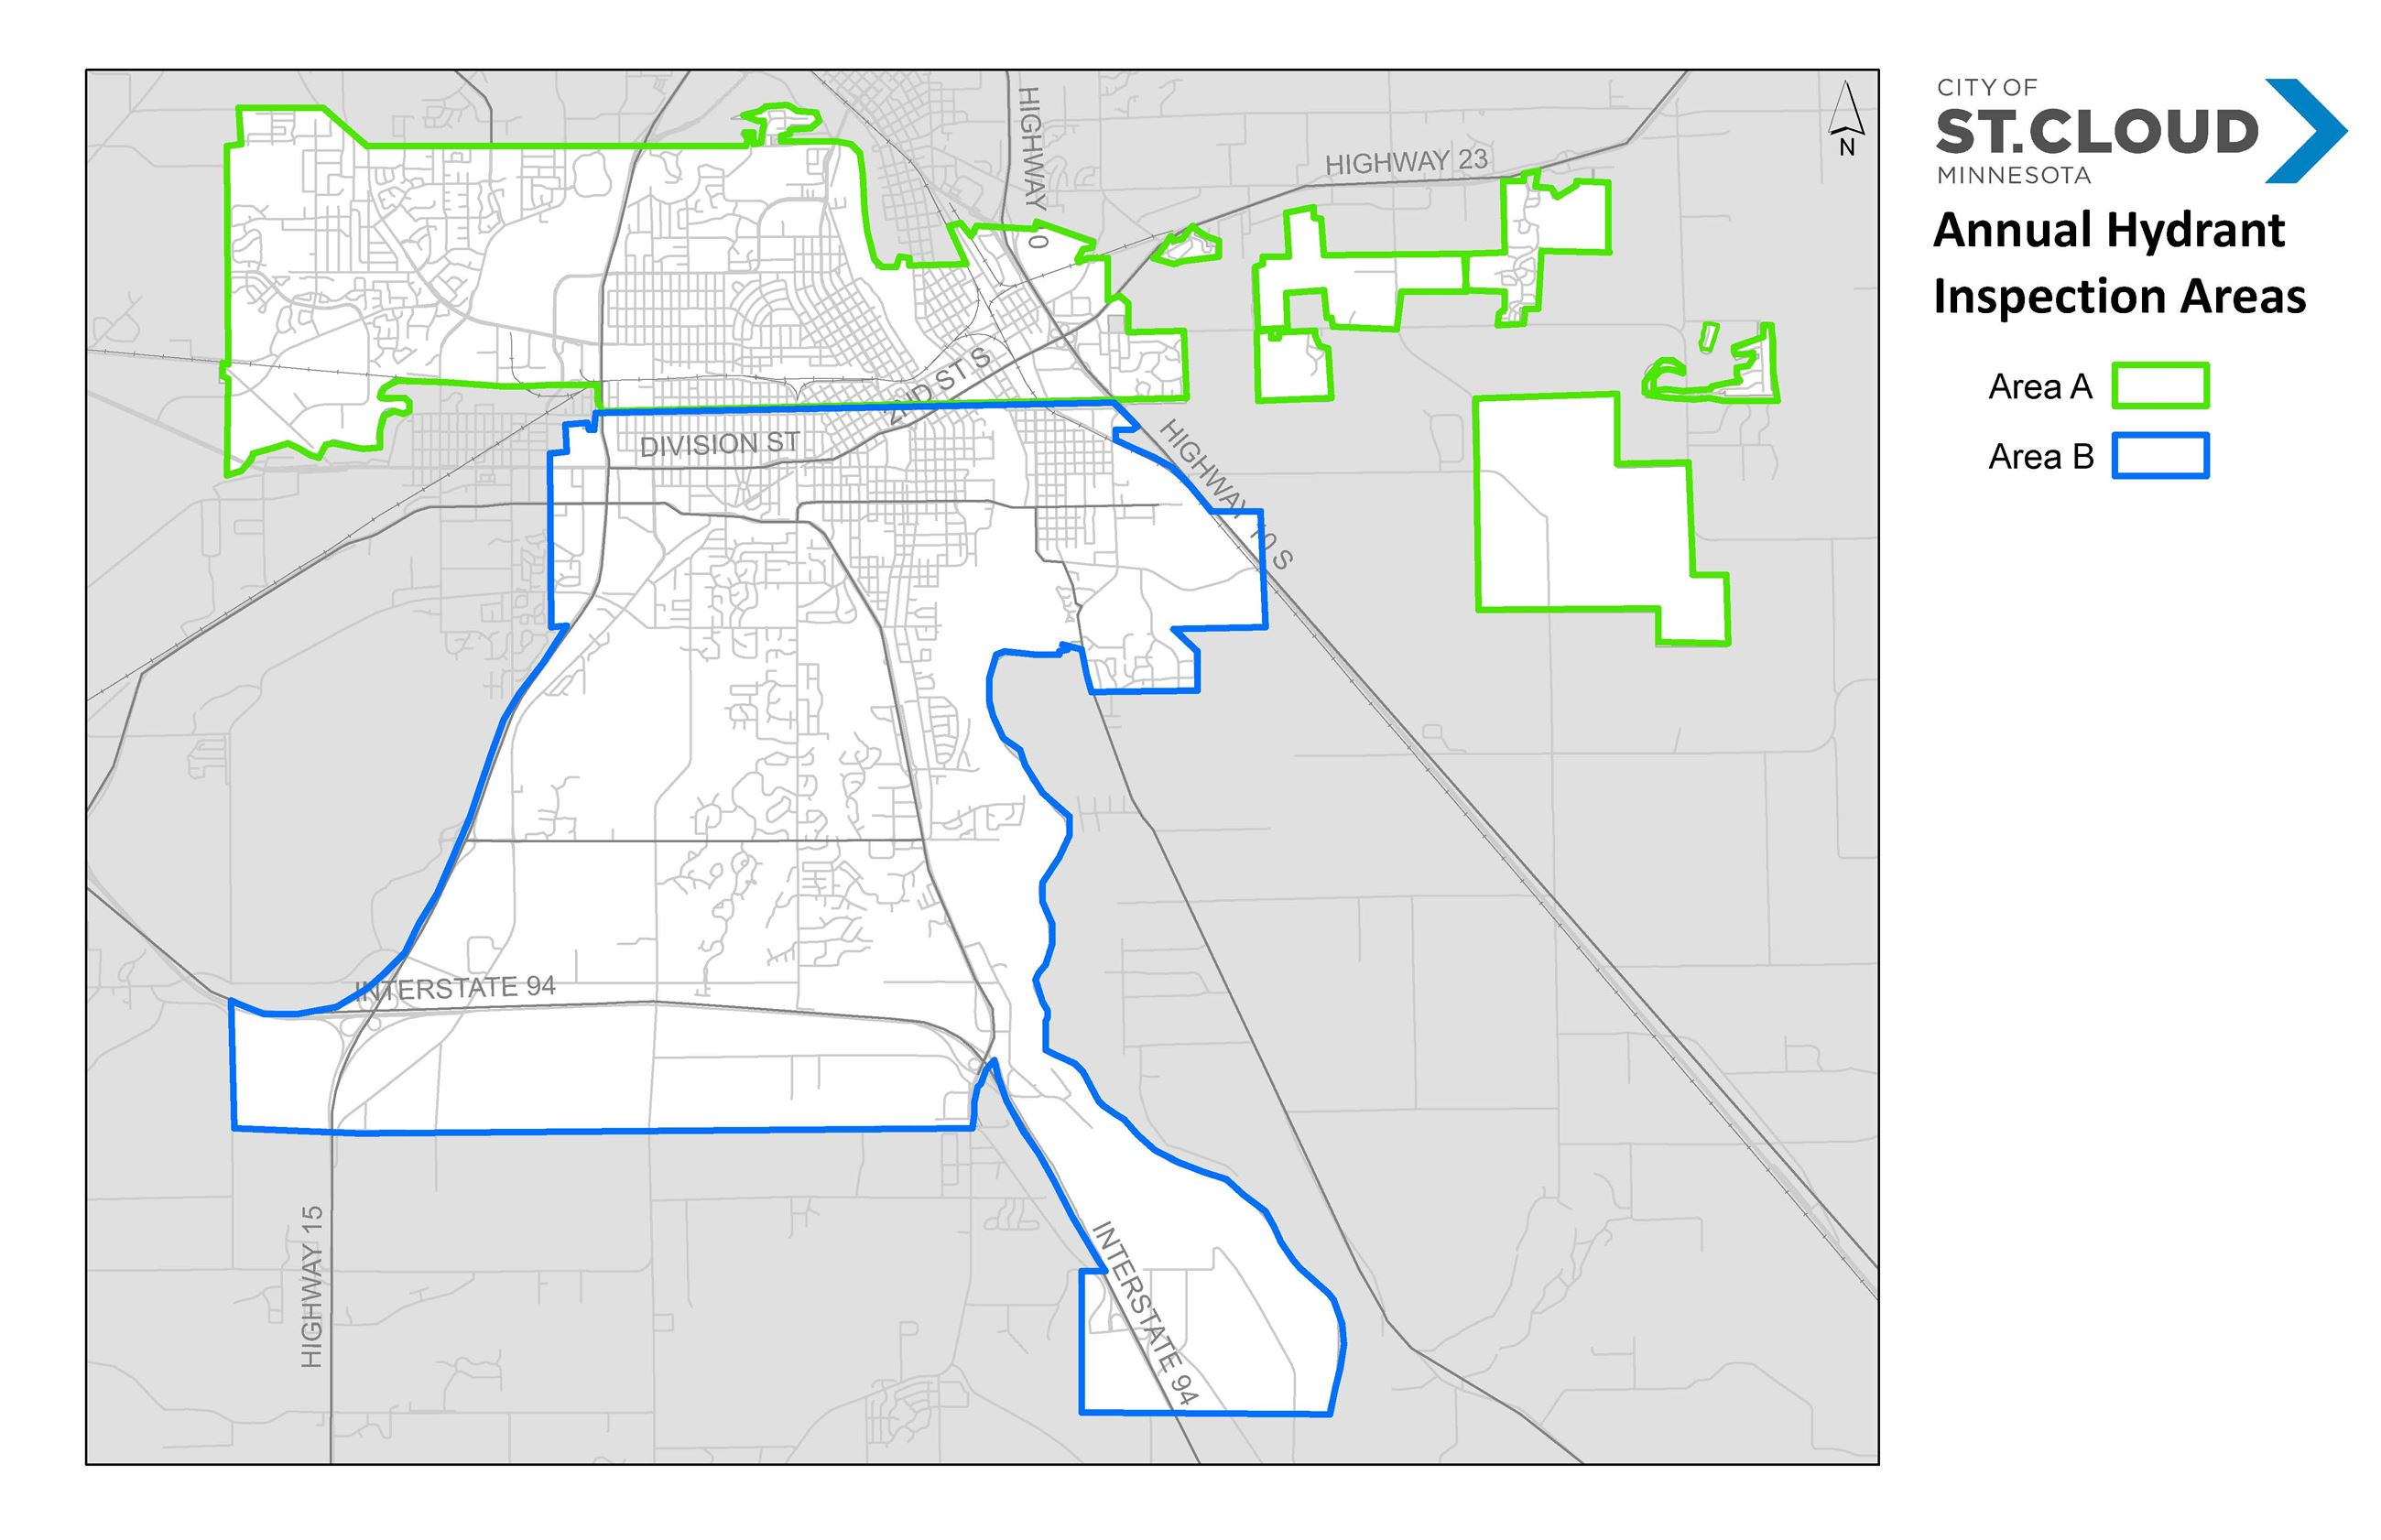 Annual Hydrant Inspection Areas Map 2020